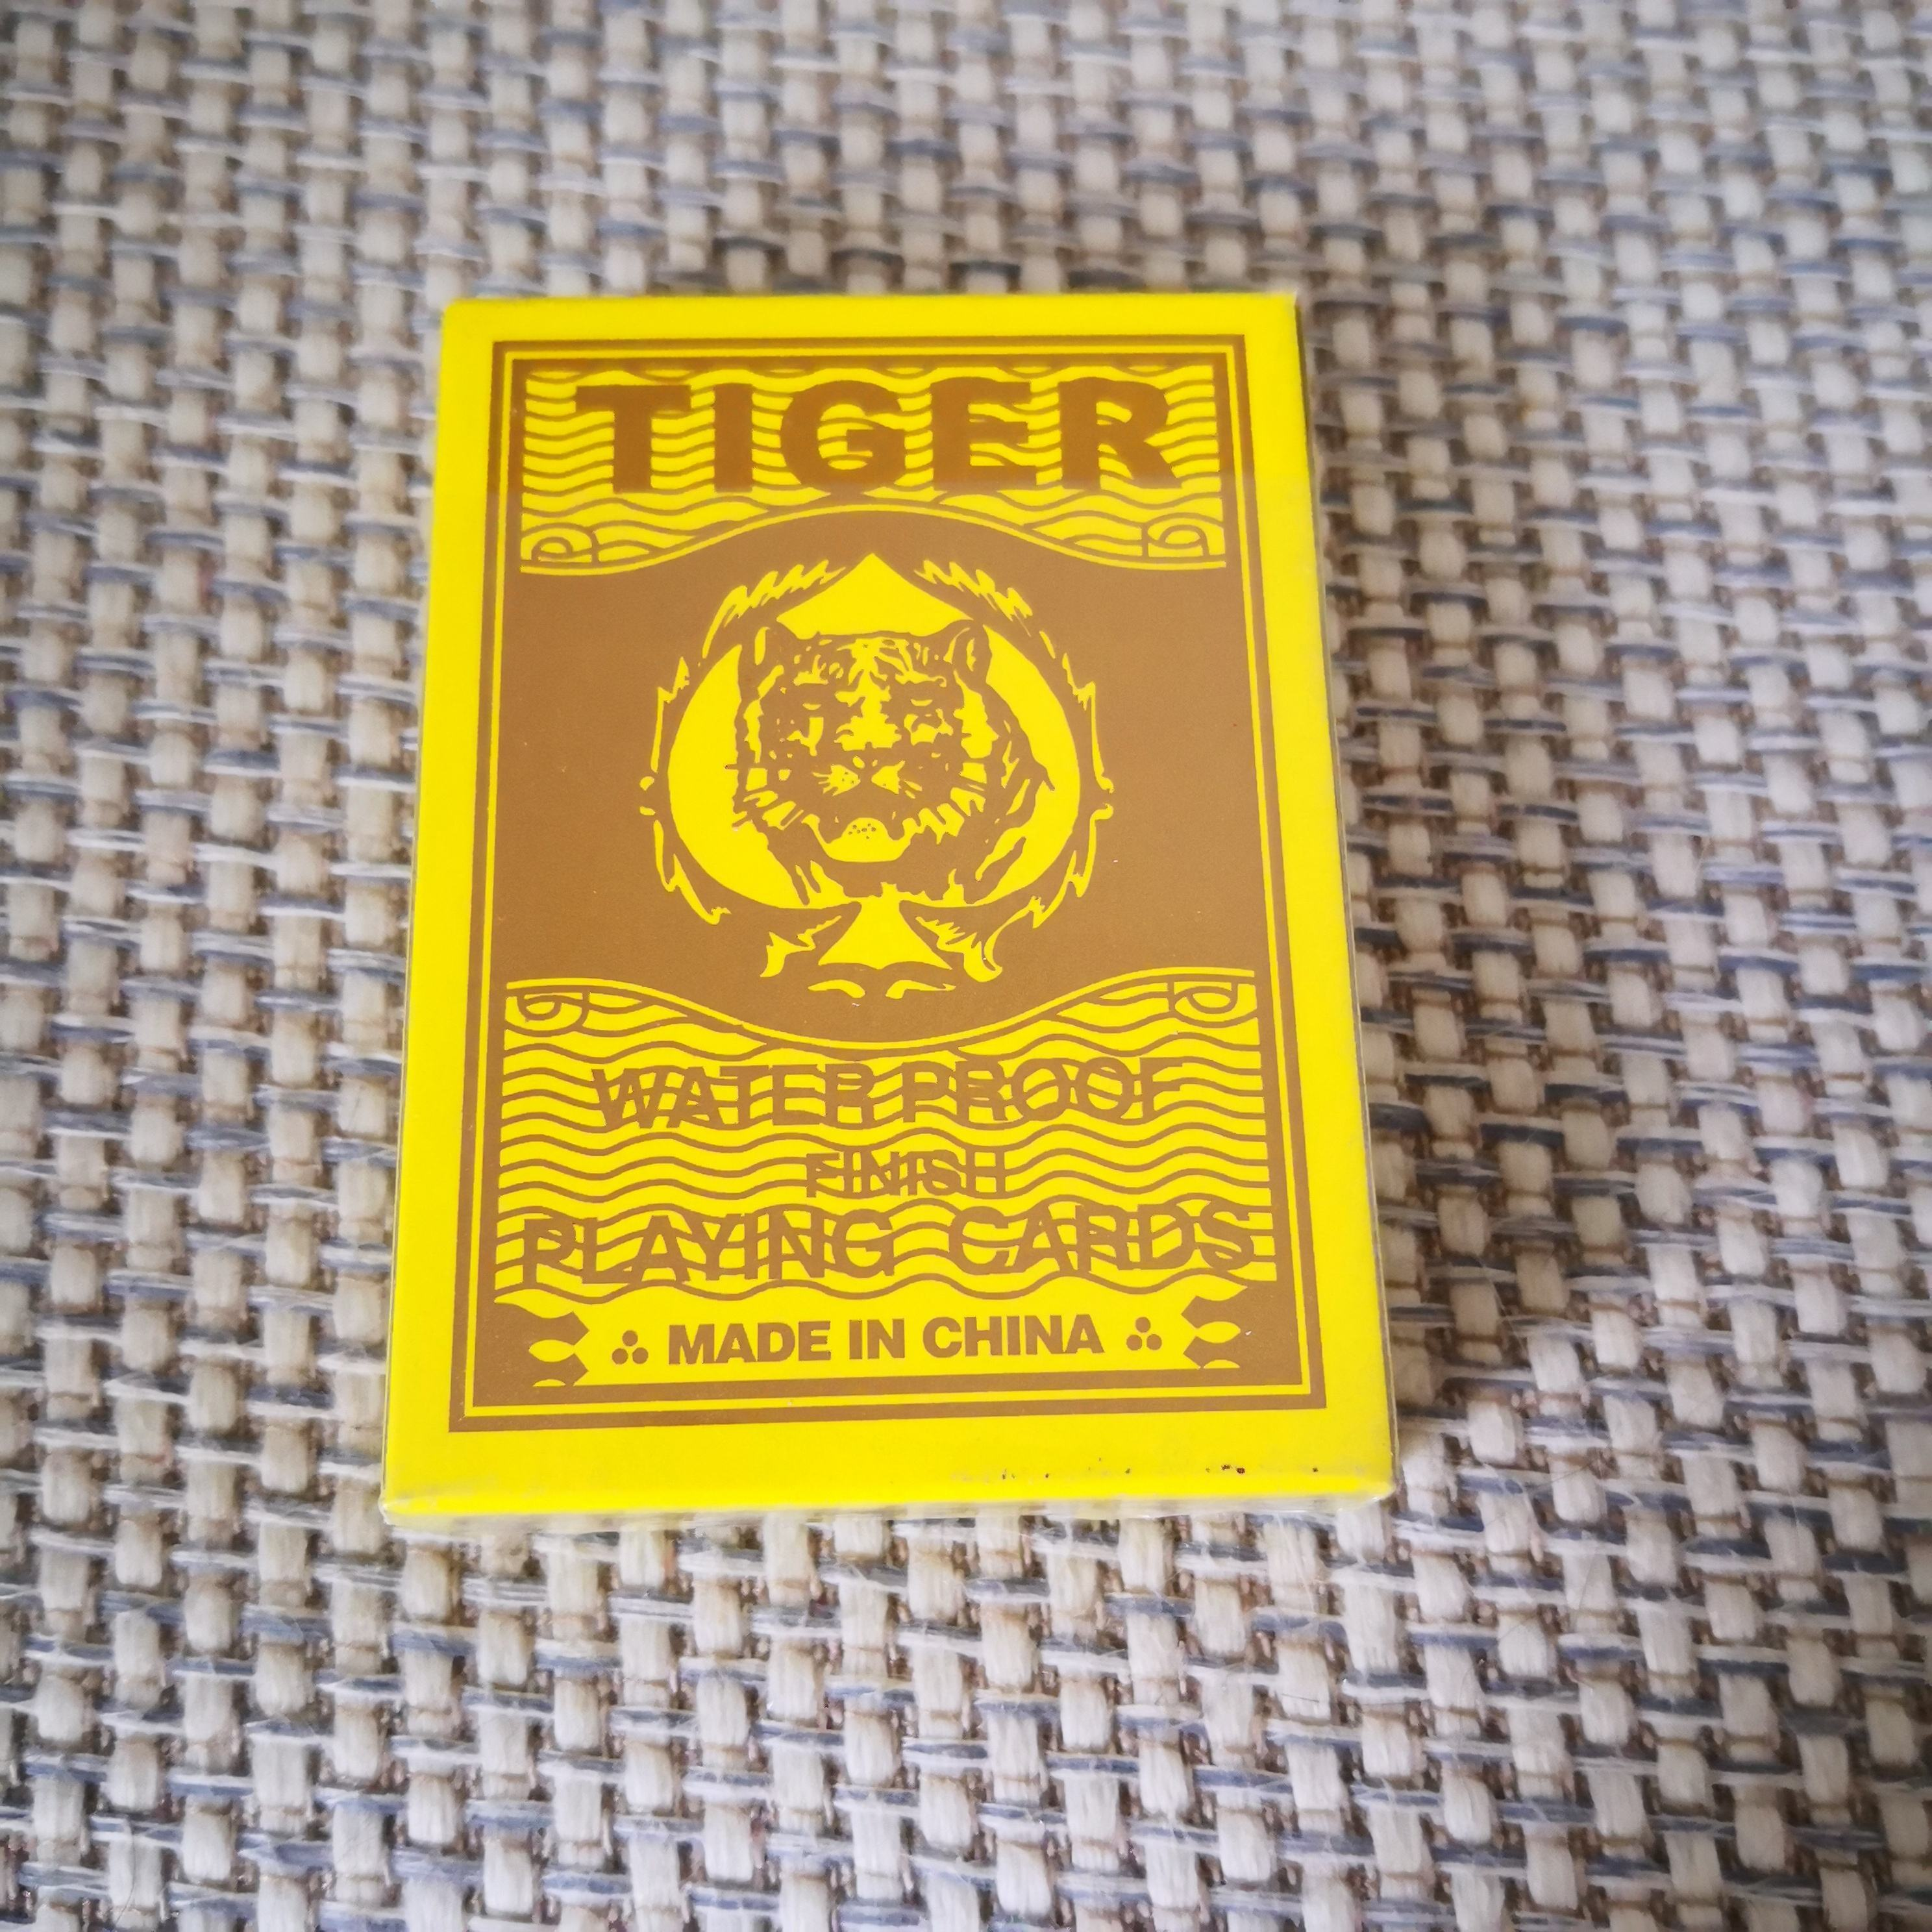 28 TIGER PLAYING CARDS